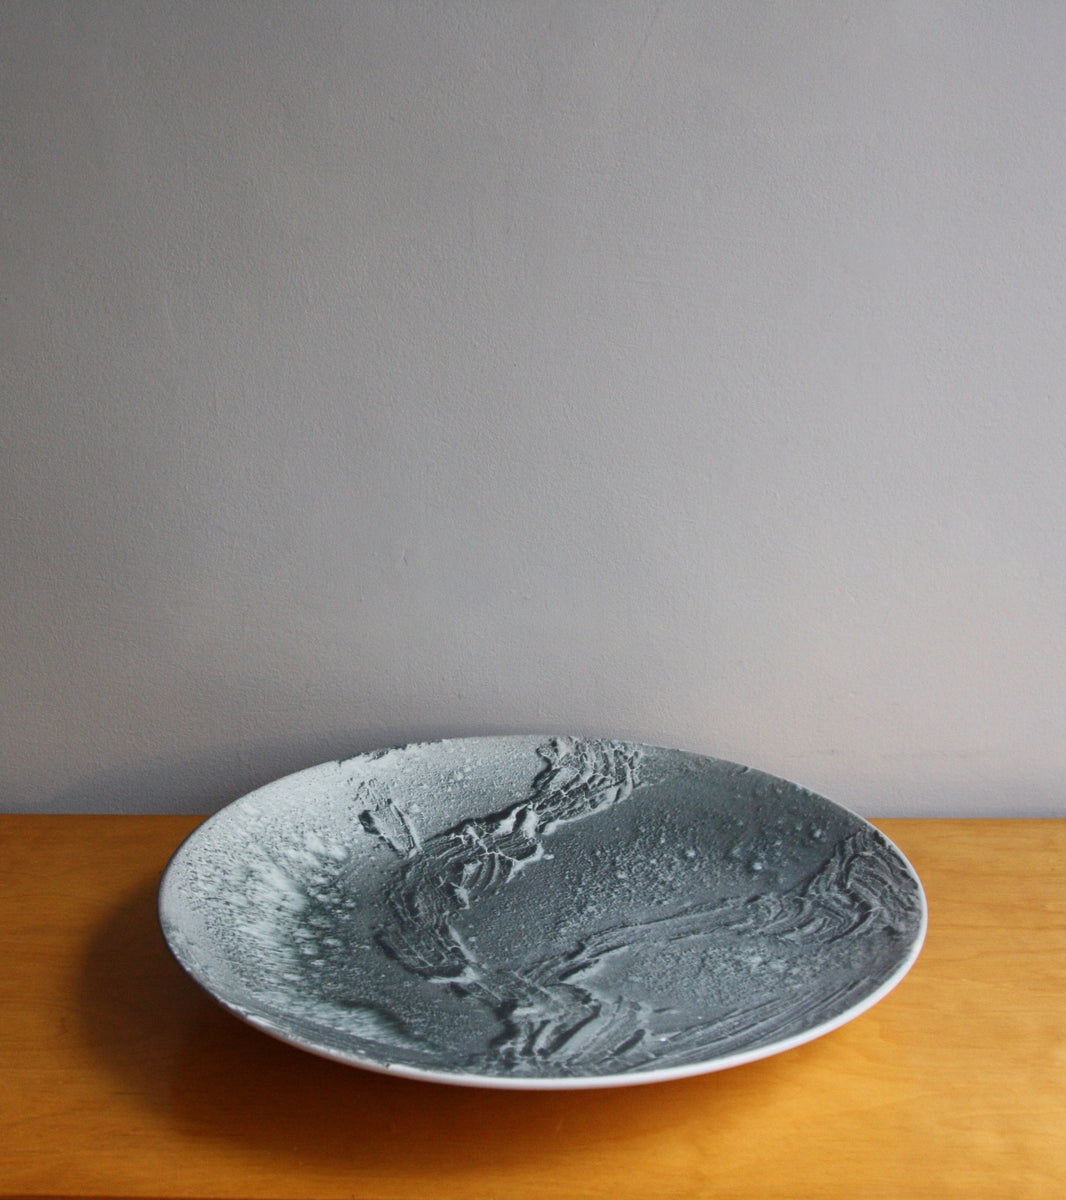 One Off Art PlateMonochromatic Black Glaze Kasper Würtz - Image 1